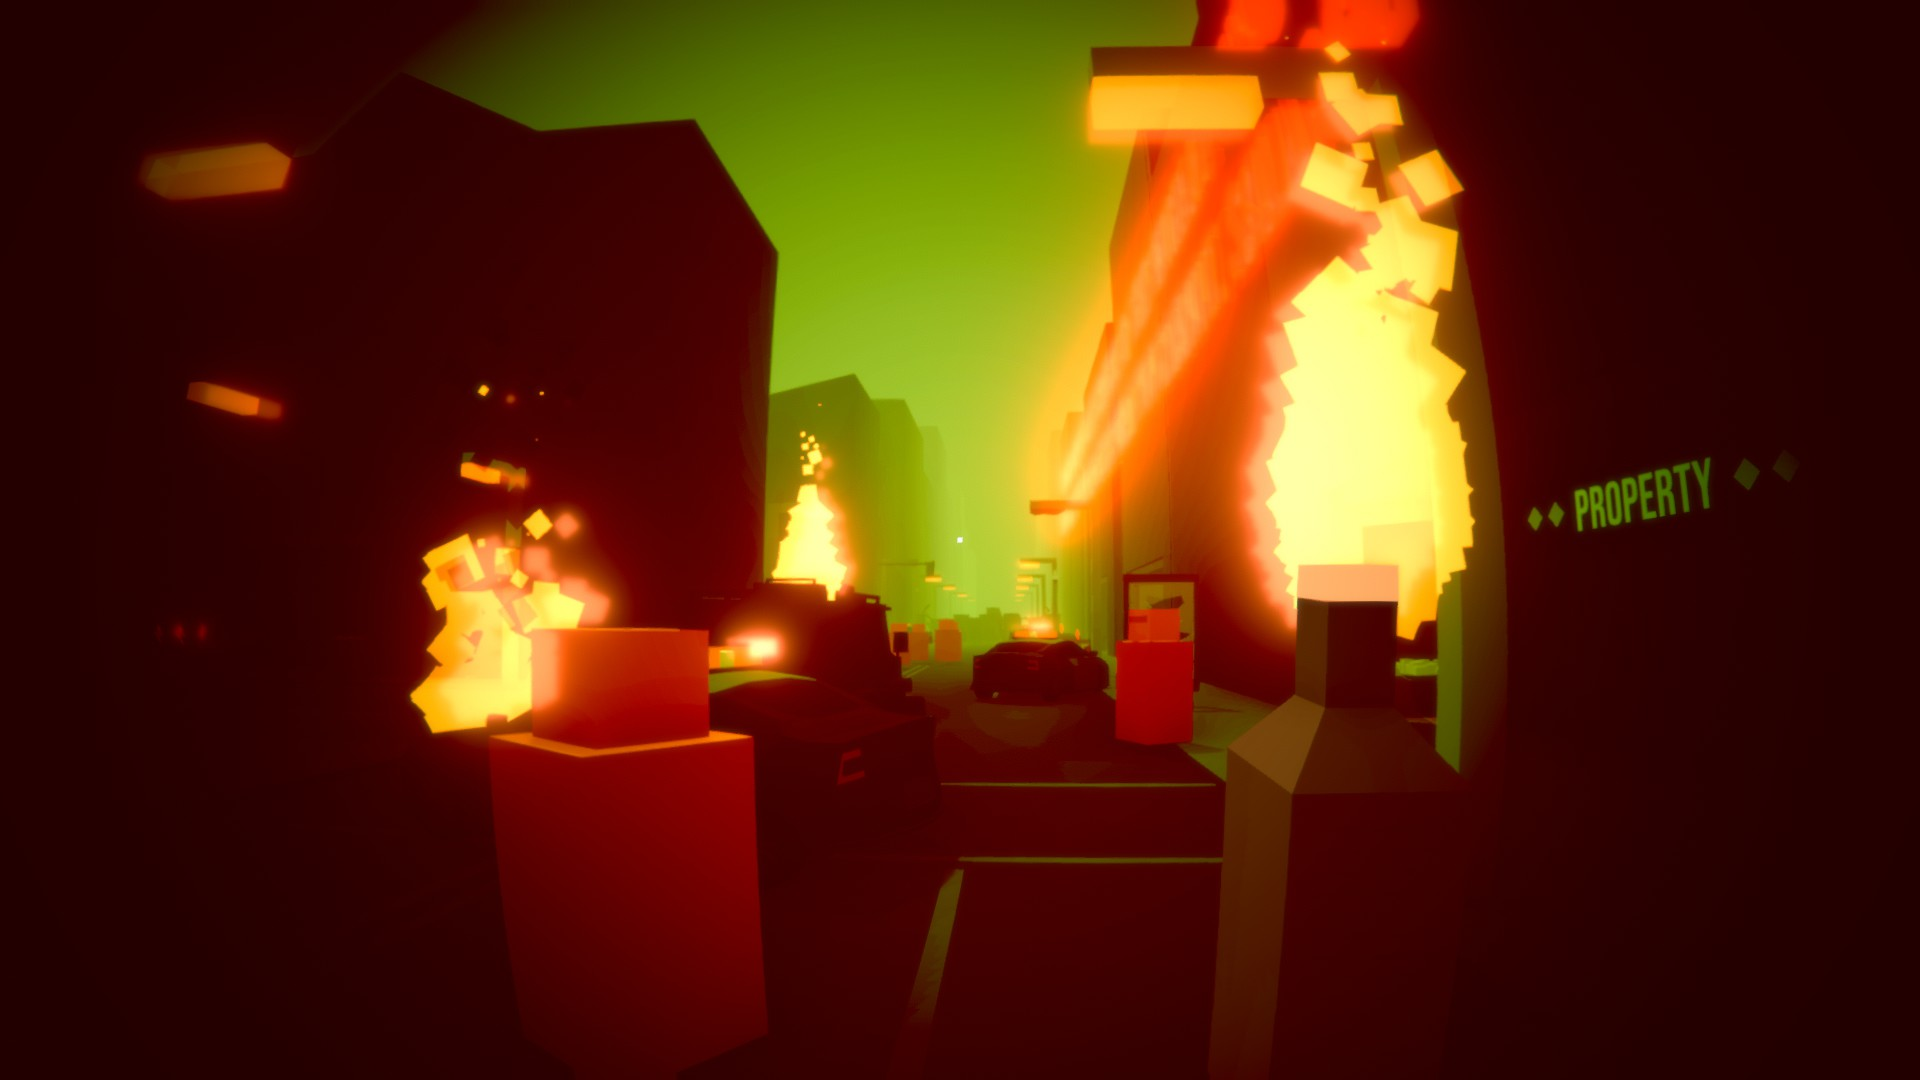 """A first person view of a very blocky street. The sky is green and hazy, and cars are on fire. The player holds a molotov cocktail. A sign on a shop reads """"PROPERTY"""""""